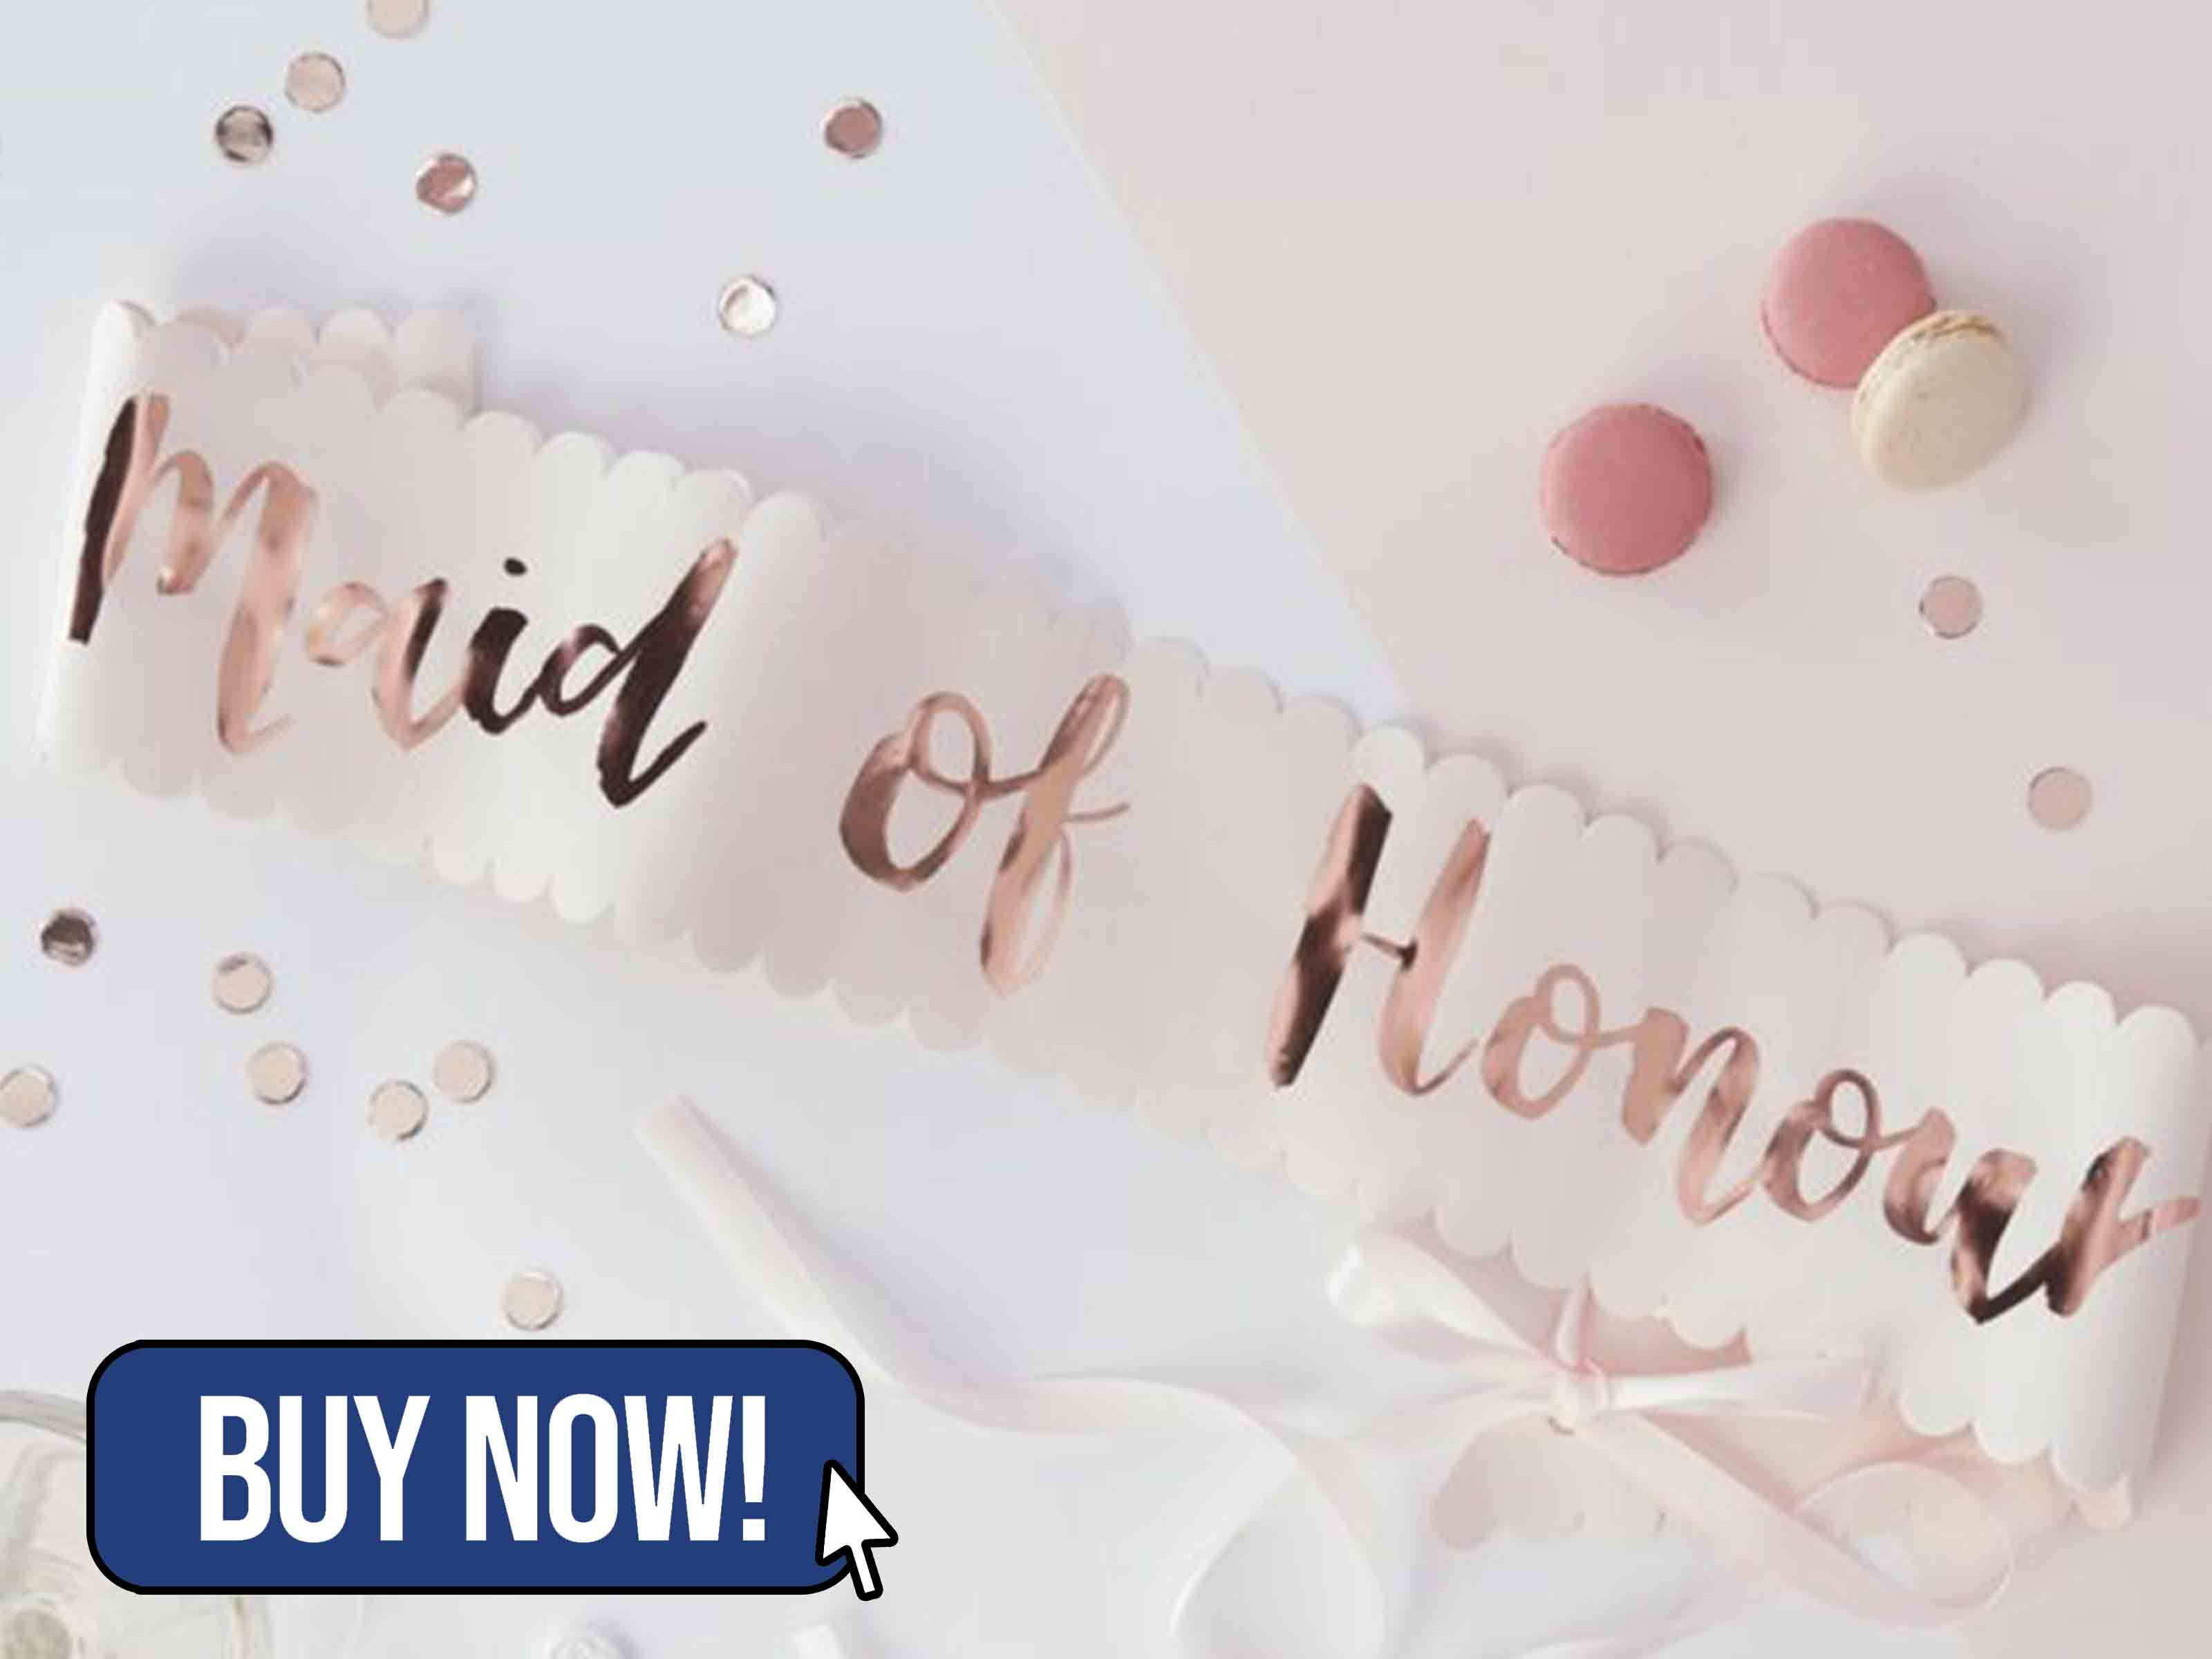 PINK AND ROSE GOLD FOILED MAID OF HONOUR SASH - hooraydays